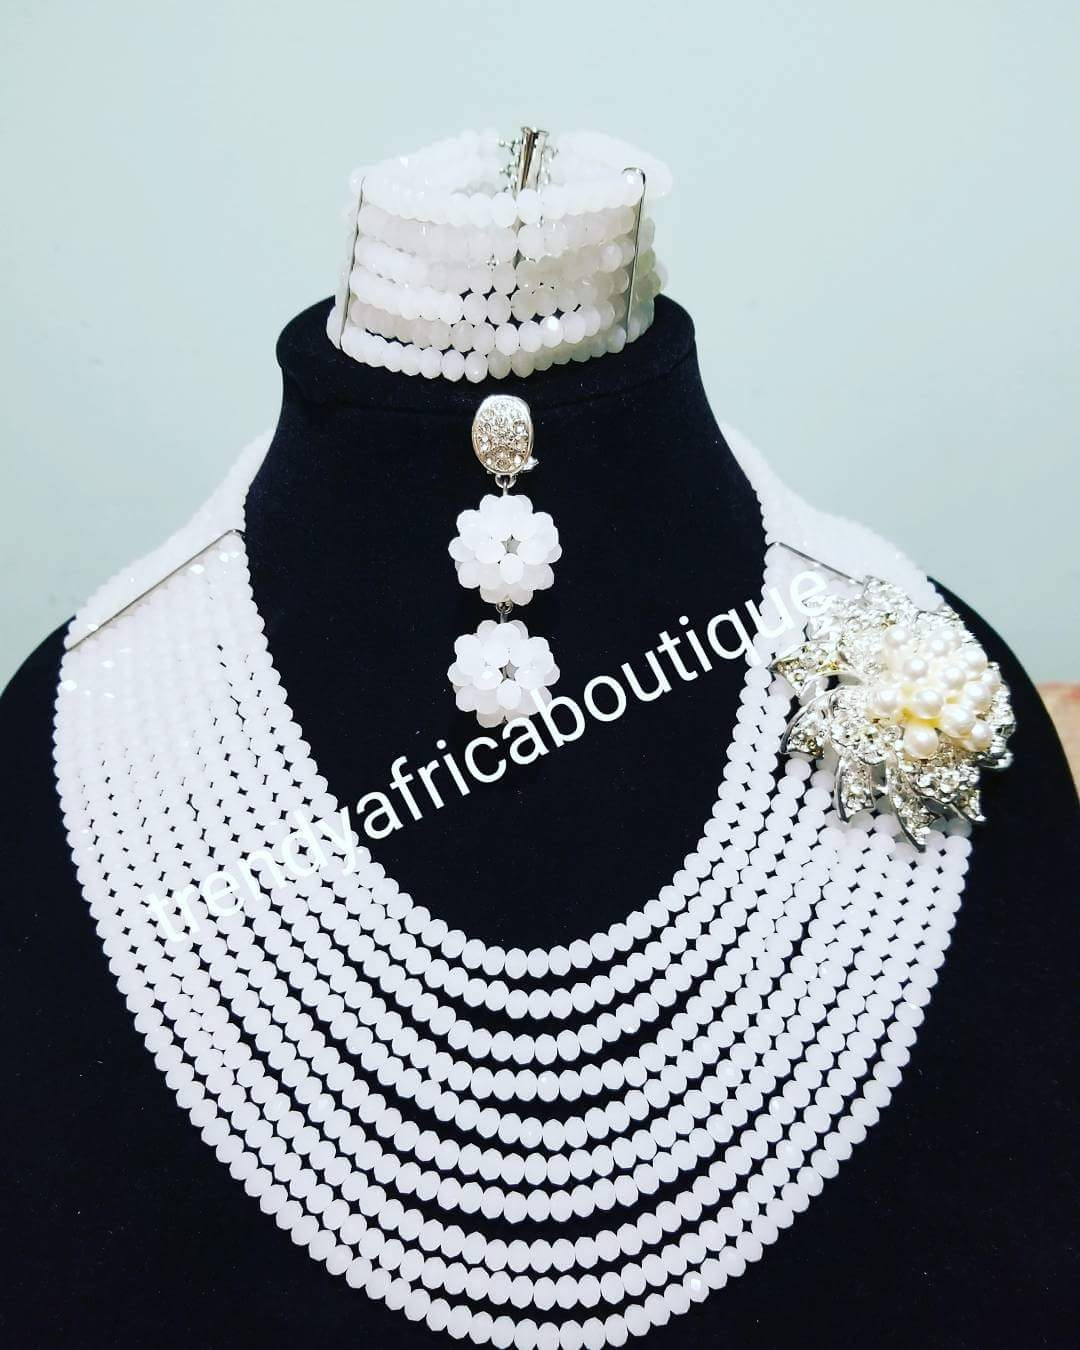 Sale: pure white Bridal crystal multi rows necklace. Beaded Necklace set with a side broach. Also have Coral-necklace sold as a set